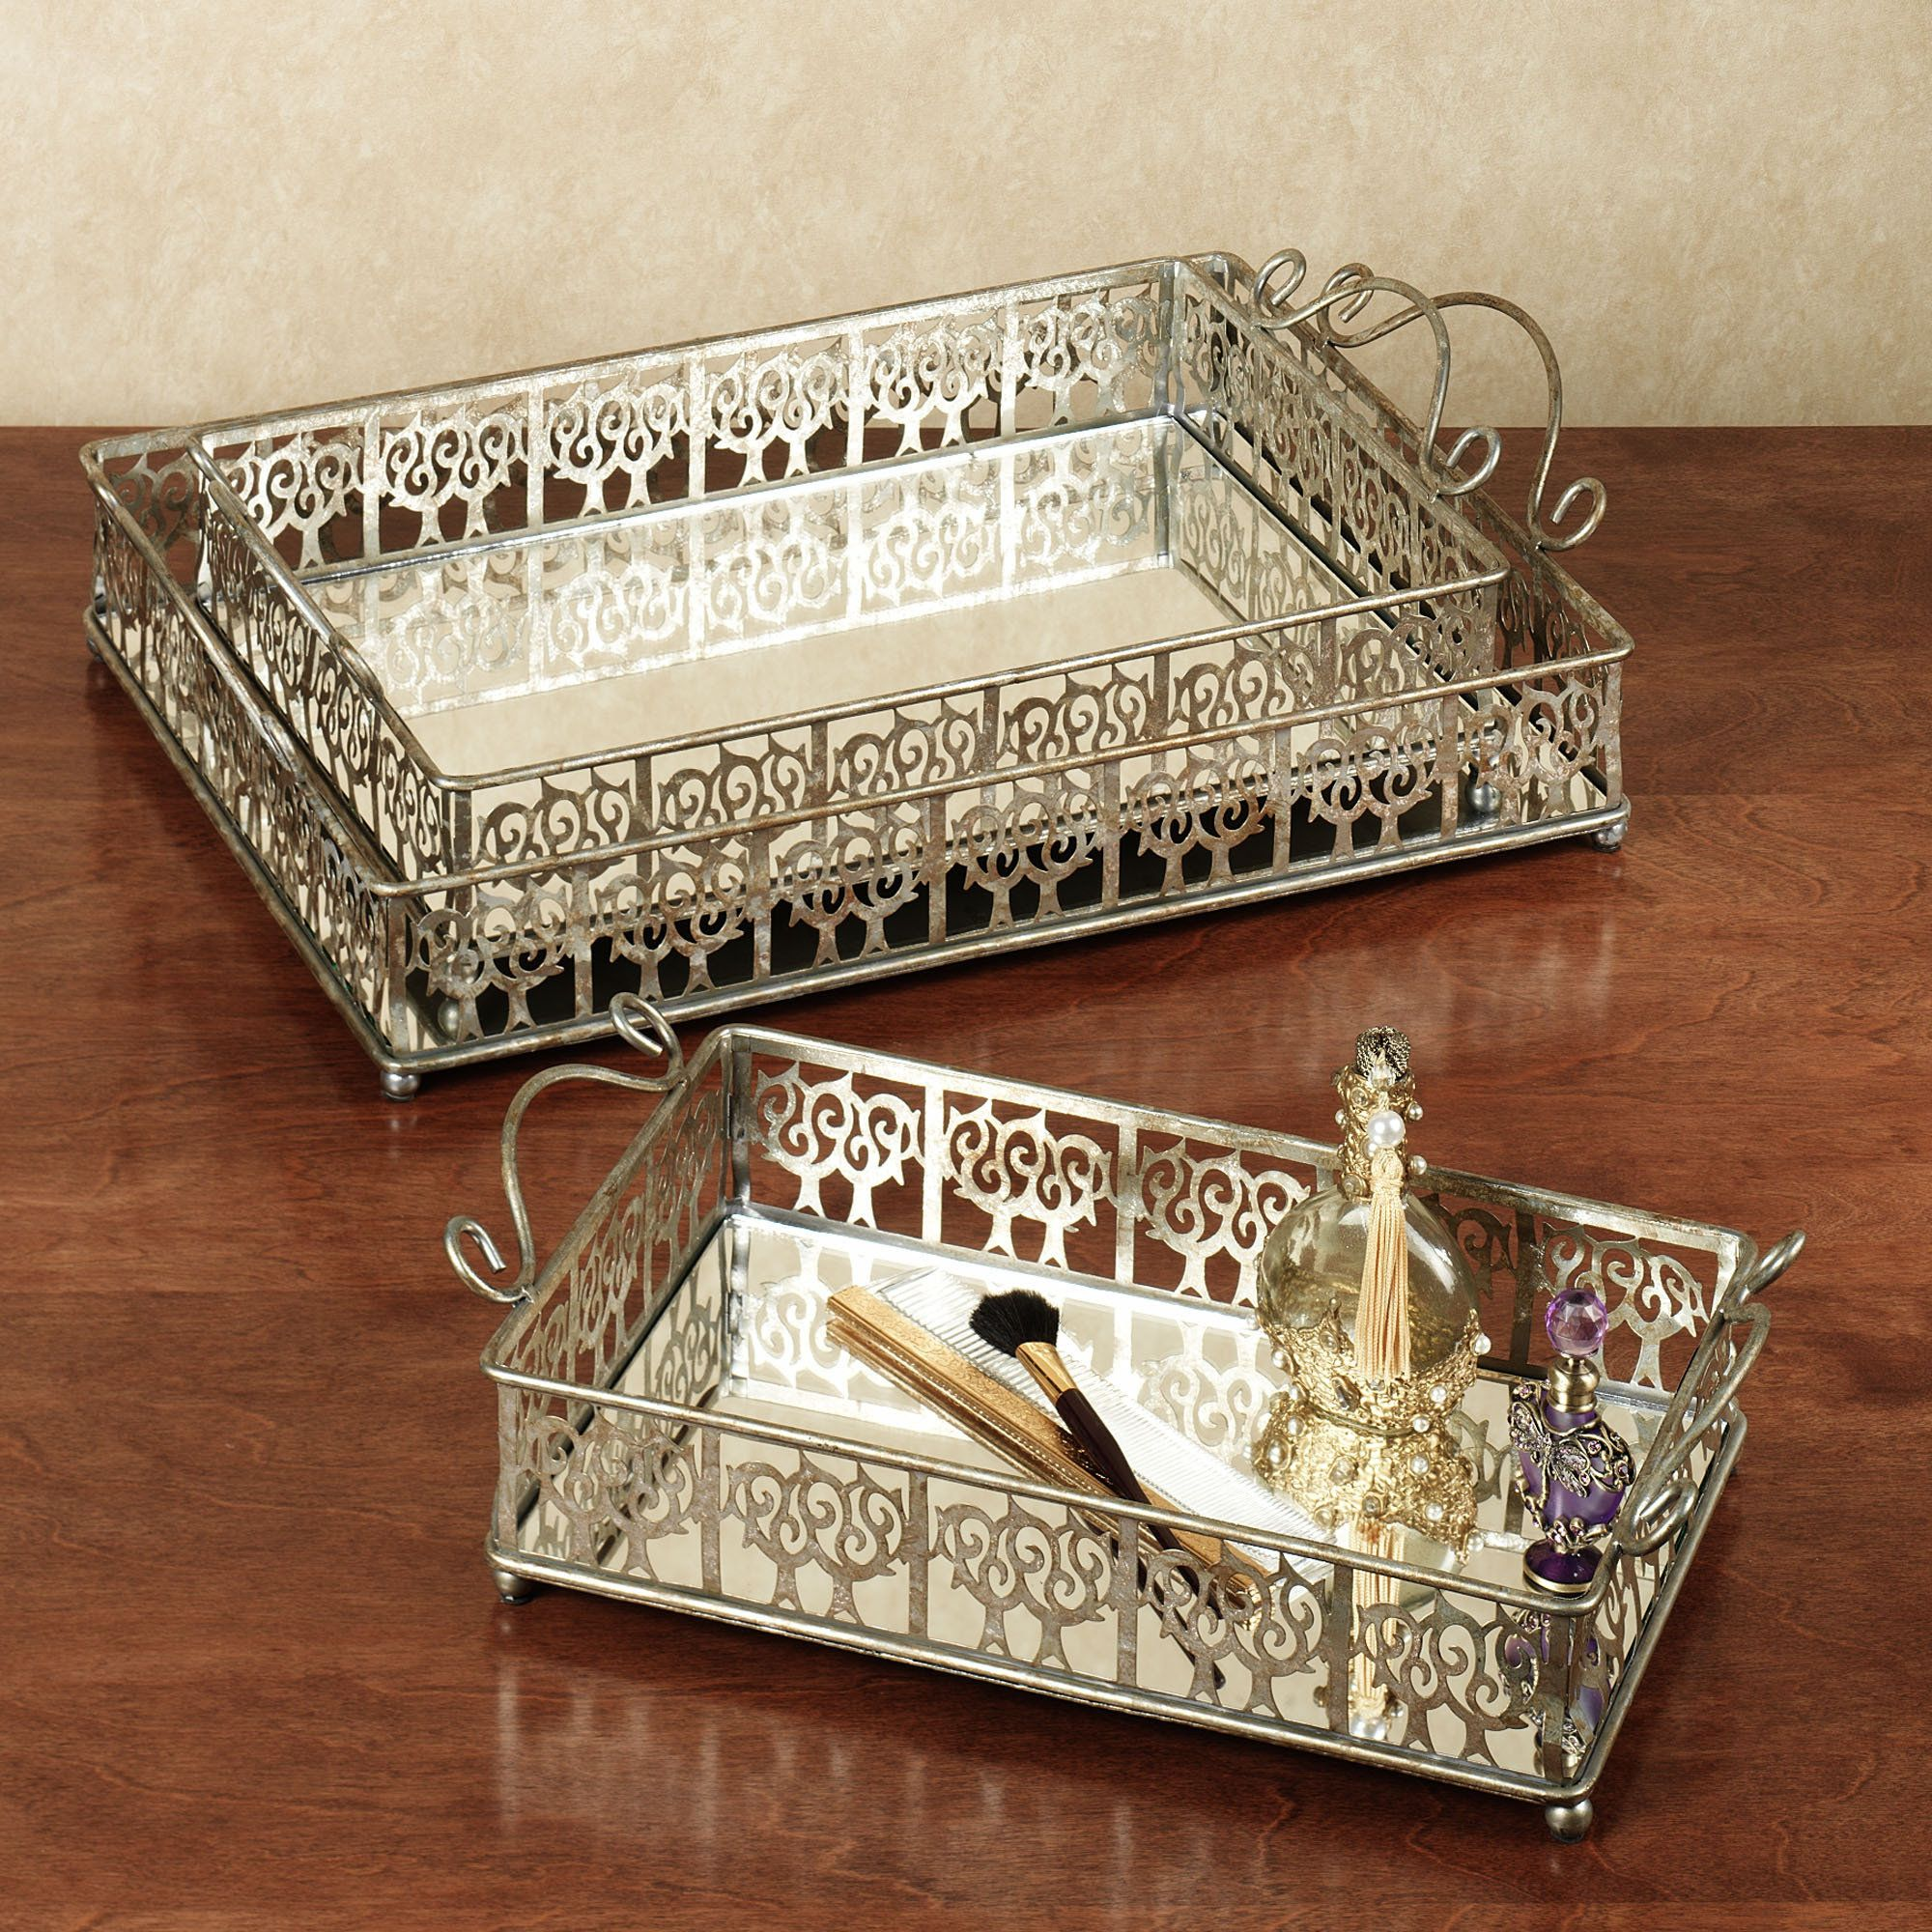 Antique vanity tray with lace insert - Vanity Trays Silver Vanity Tray